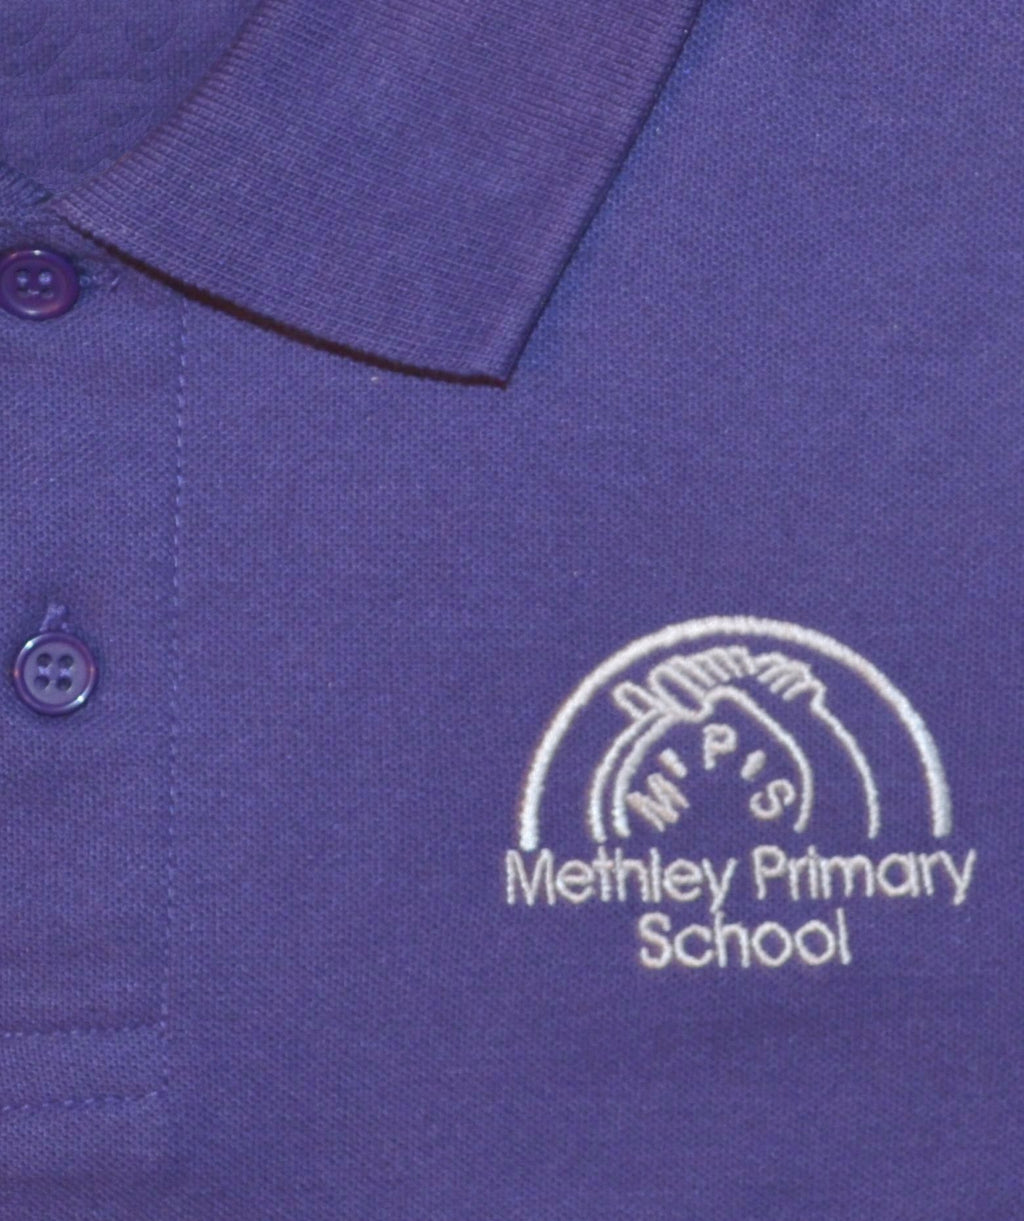 Methley Primary School Uniform Bundle 7